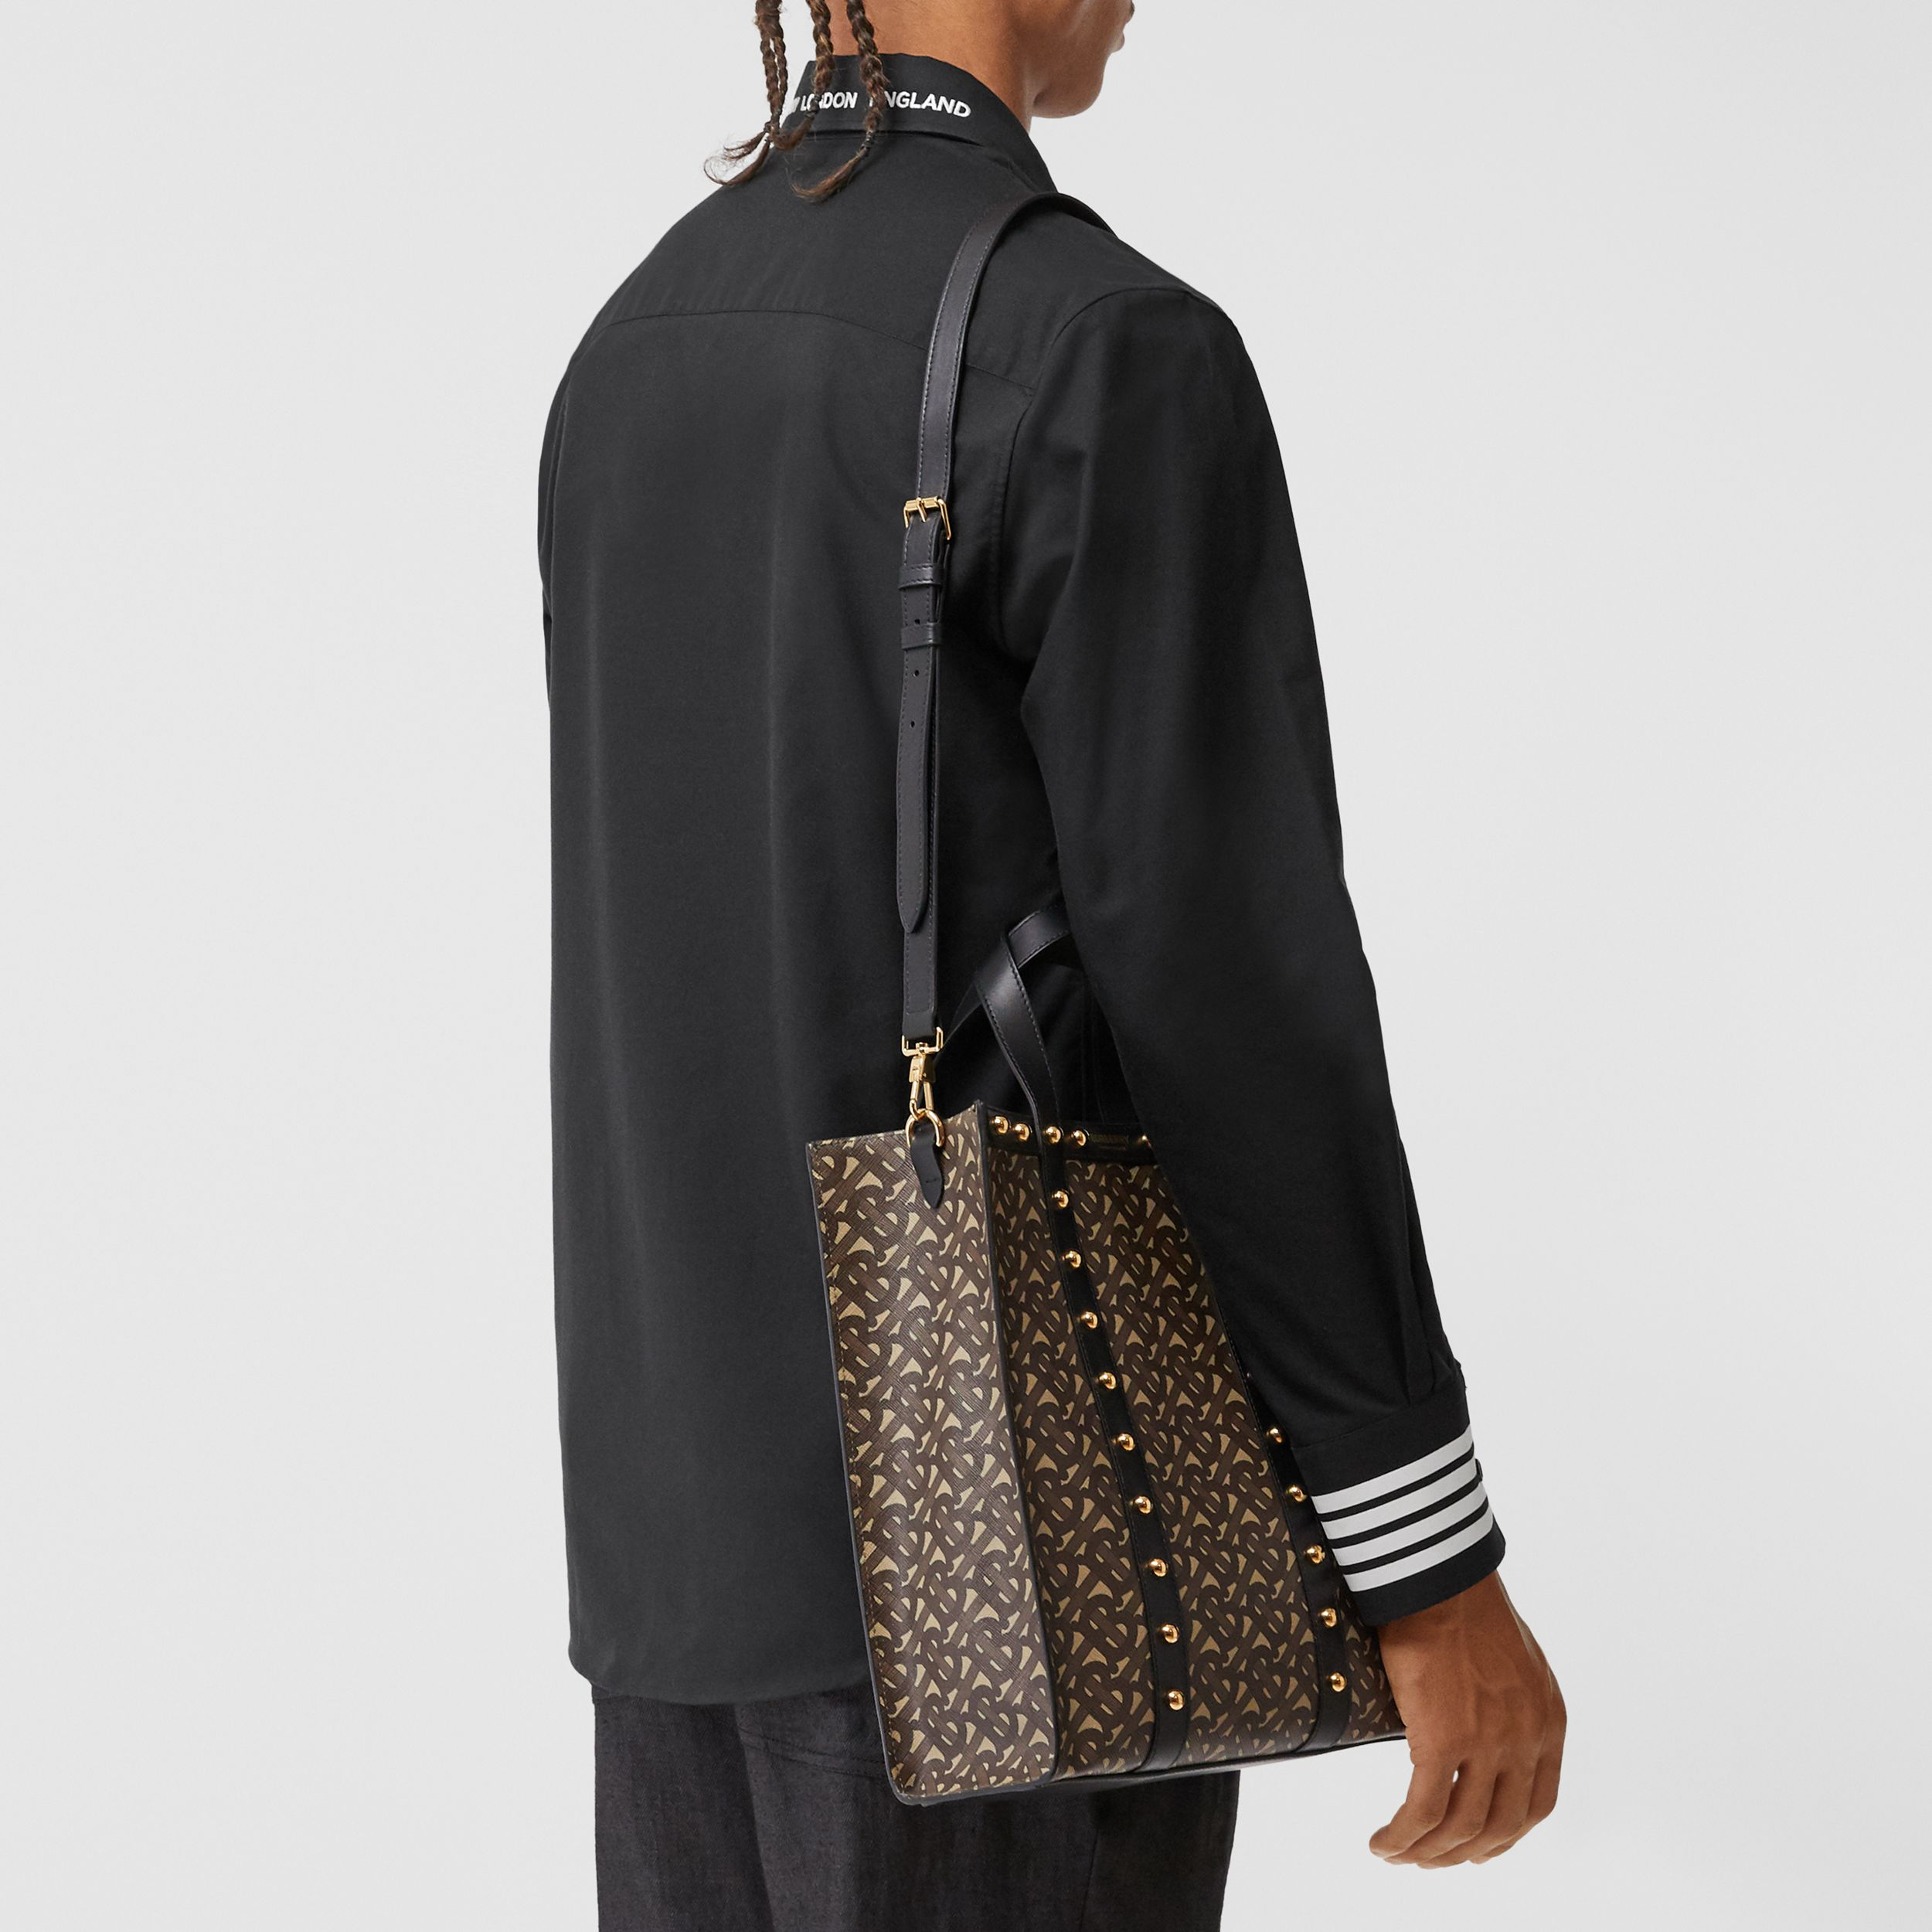 Small Monogram Print E-canvas Portrait Tote Bag in Black - Women | Burberry - 3